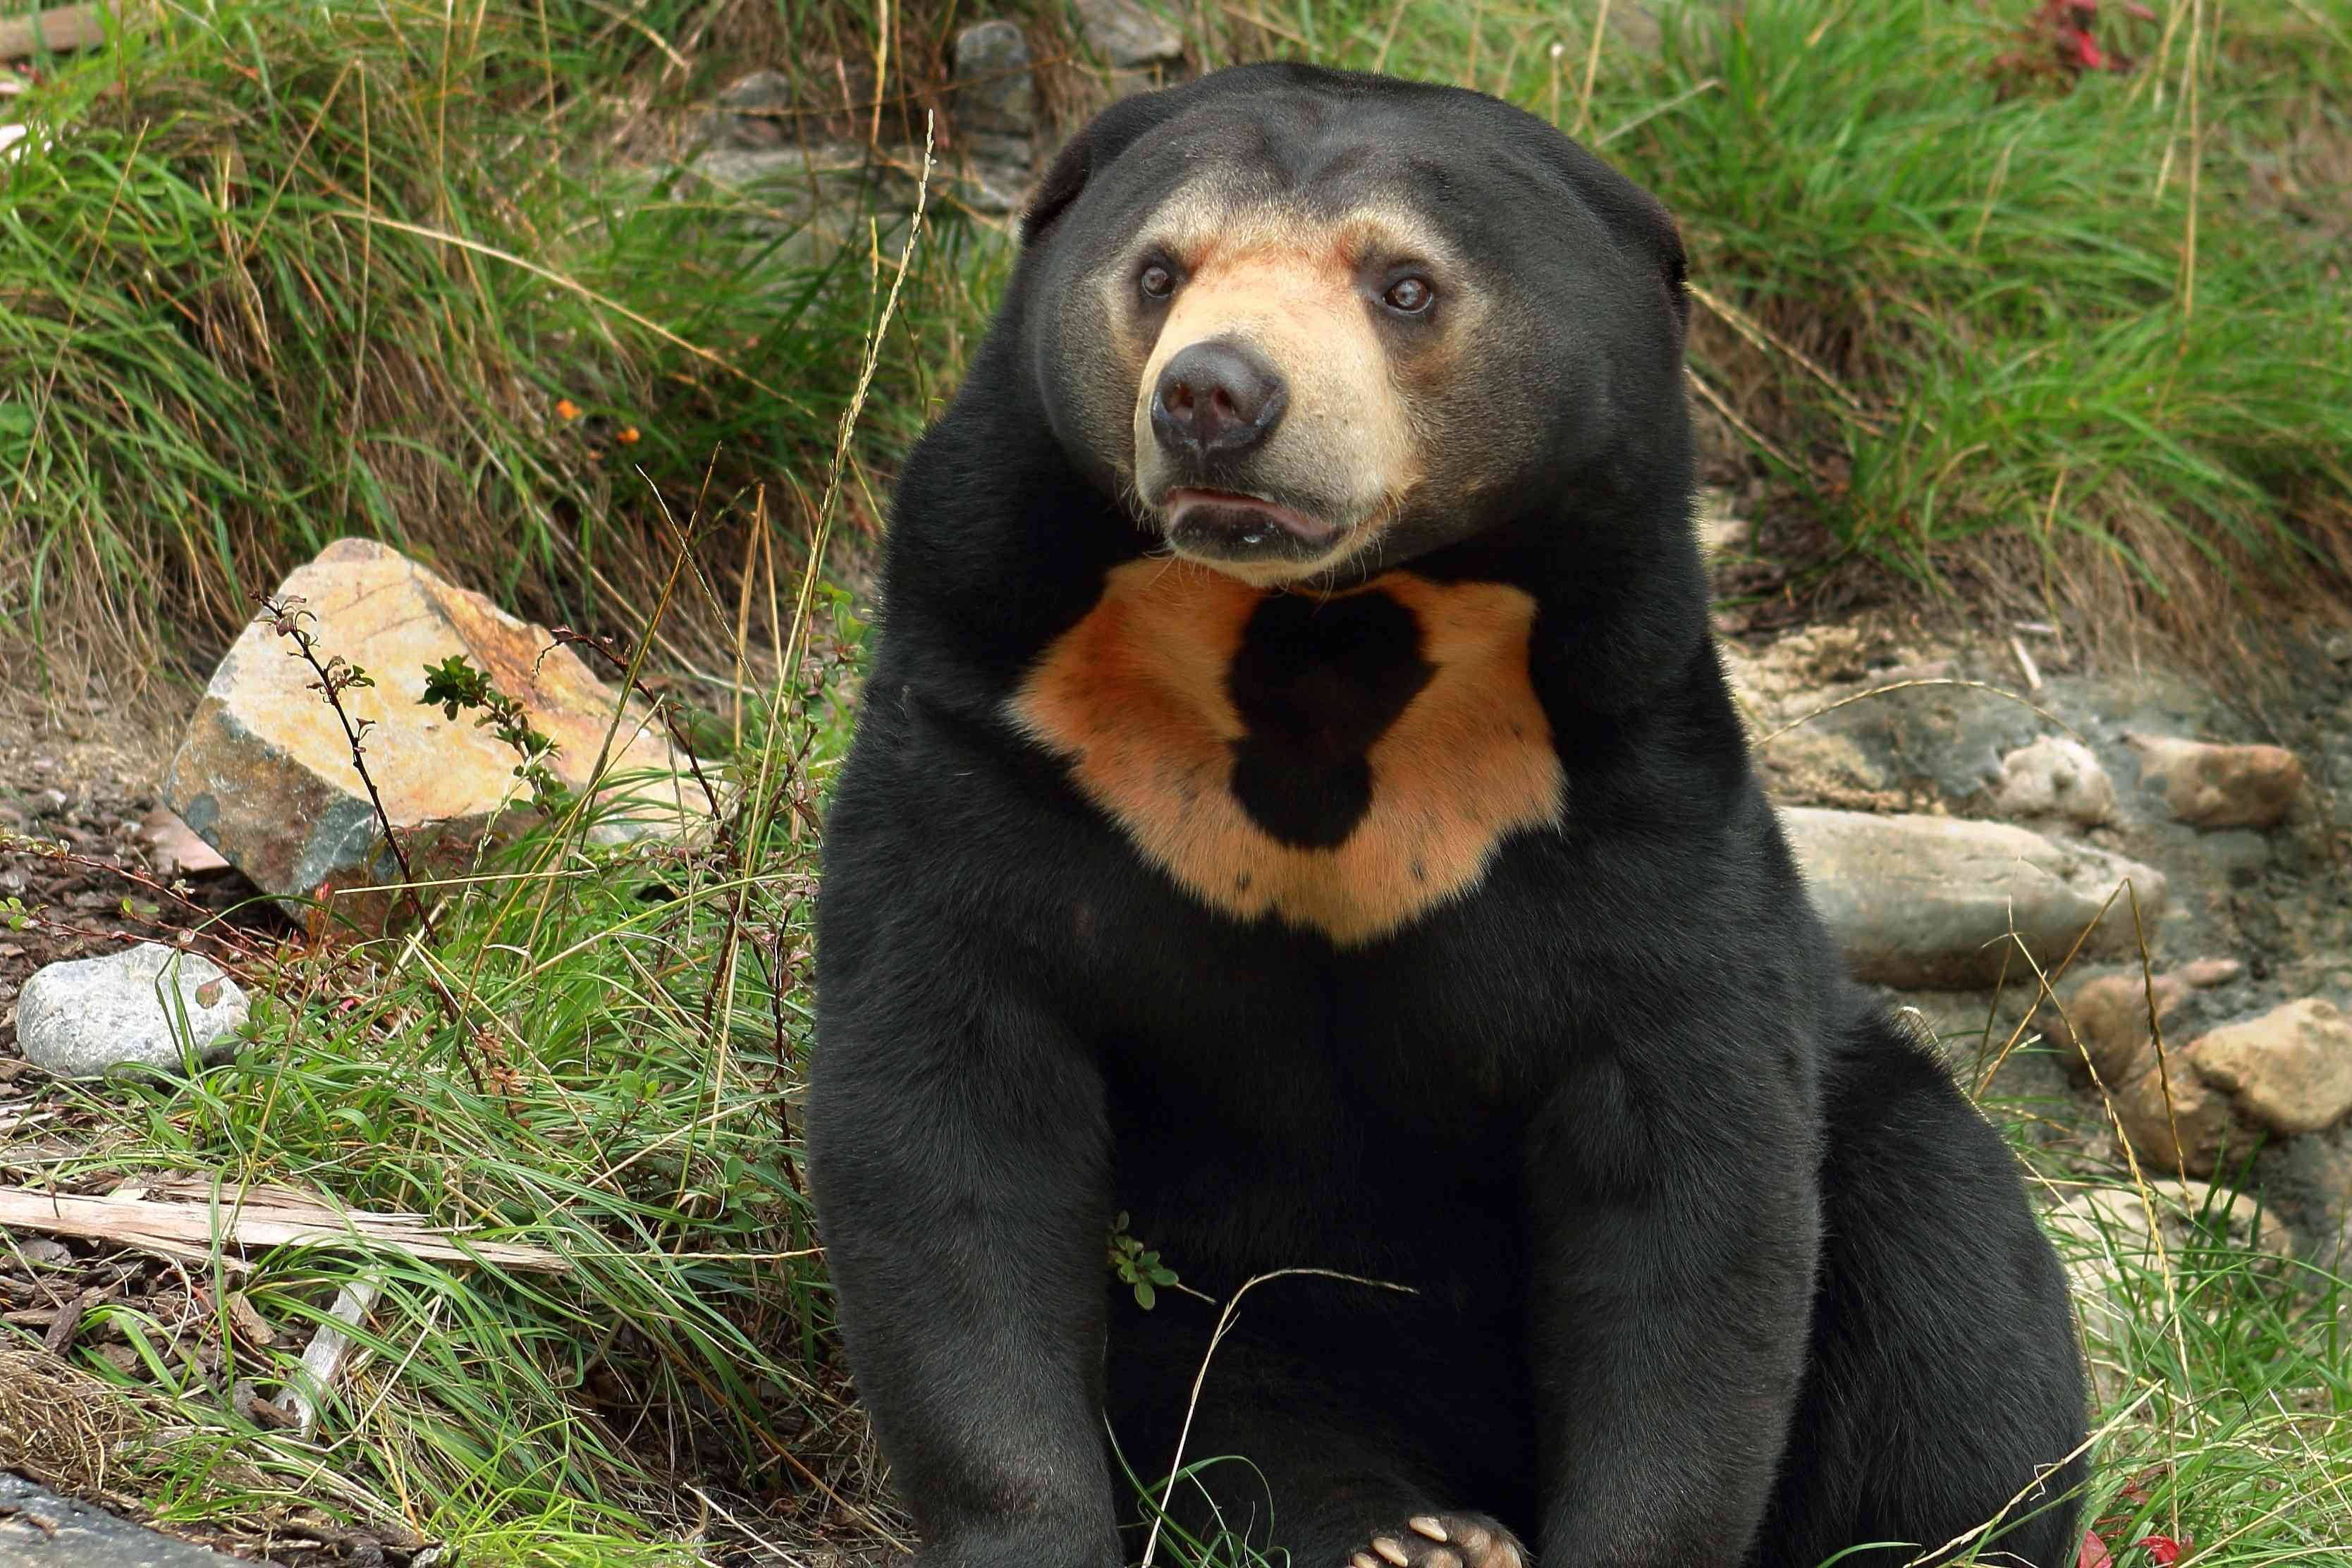 black sun bear showing off chest markings, a black circle in tan patch that looks like a sun